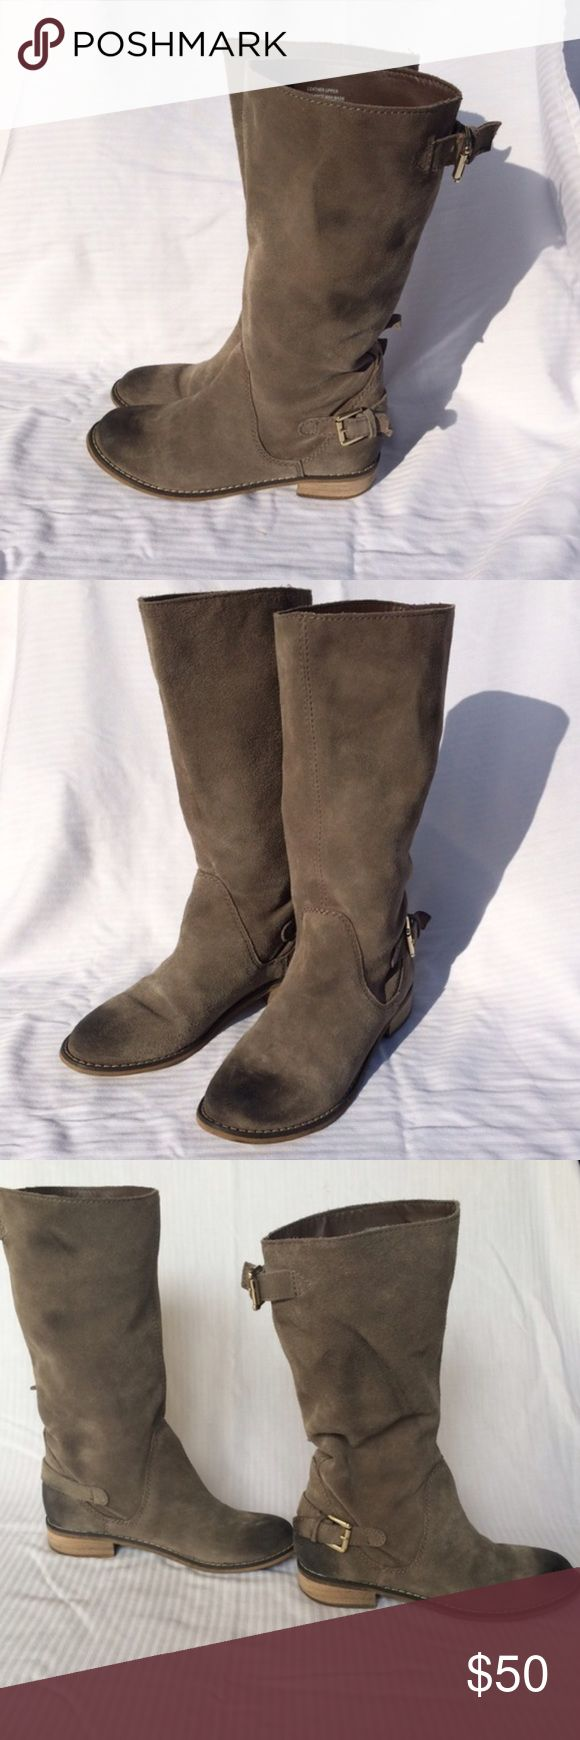 Kelsi Dagger Suede/Leather Boots Super cute Kelsi Dagger Tall boots. Super cute and fashionable! Purchased from another posher but they are too big on me! They hit below the knee Kelsi Dagger Shoes Over the Knee Boots